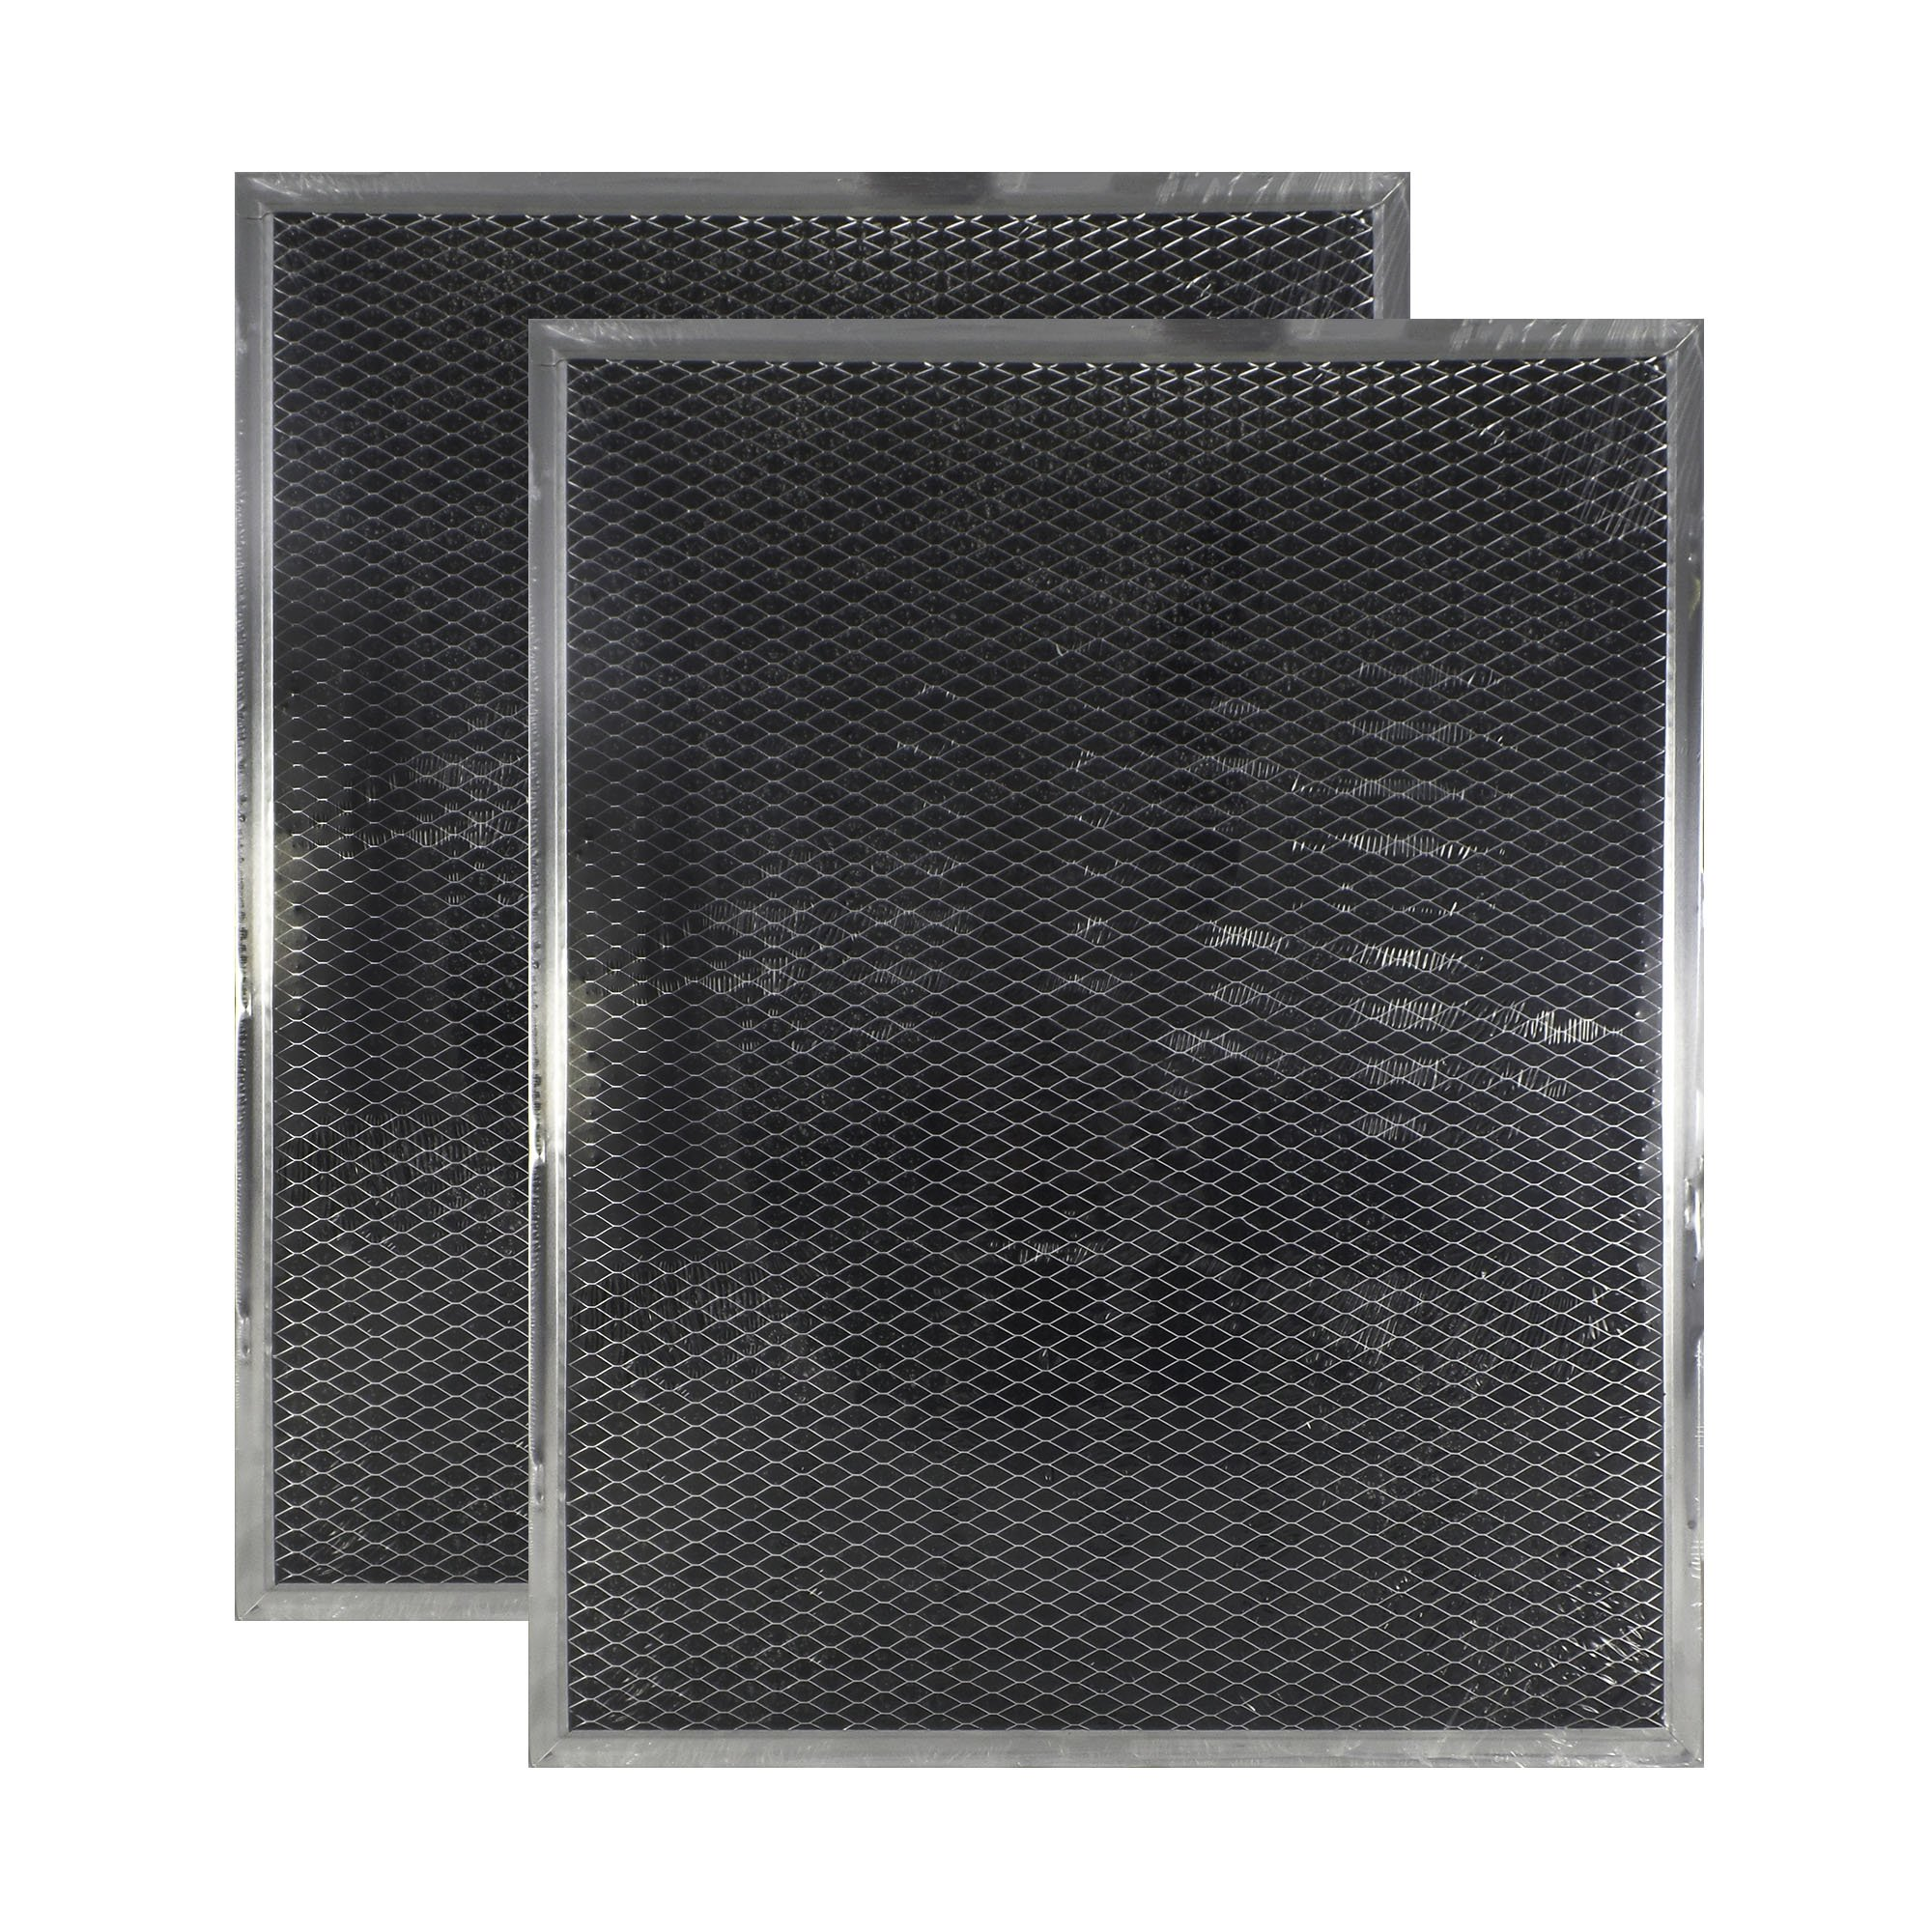 2-Pack Air Filter Factory Compatible Replacement for Broan BPSF30 99010308 QS WS Non-Ducted Measures 10.82 Inches Wide X 13.31 Inches Length X .093 Inches Thick Range Hood Charcoal Carbon Filters